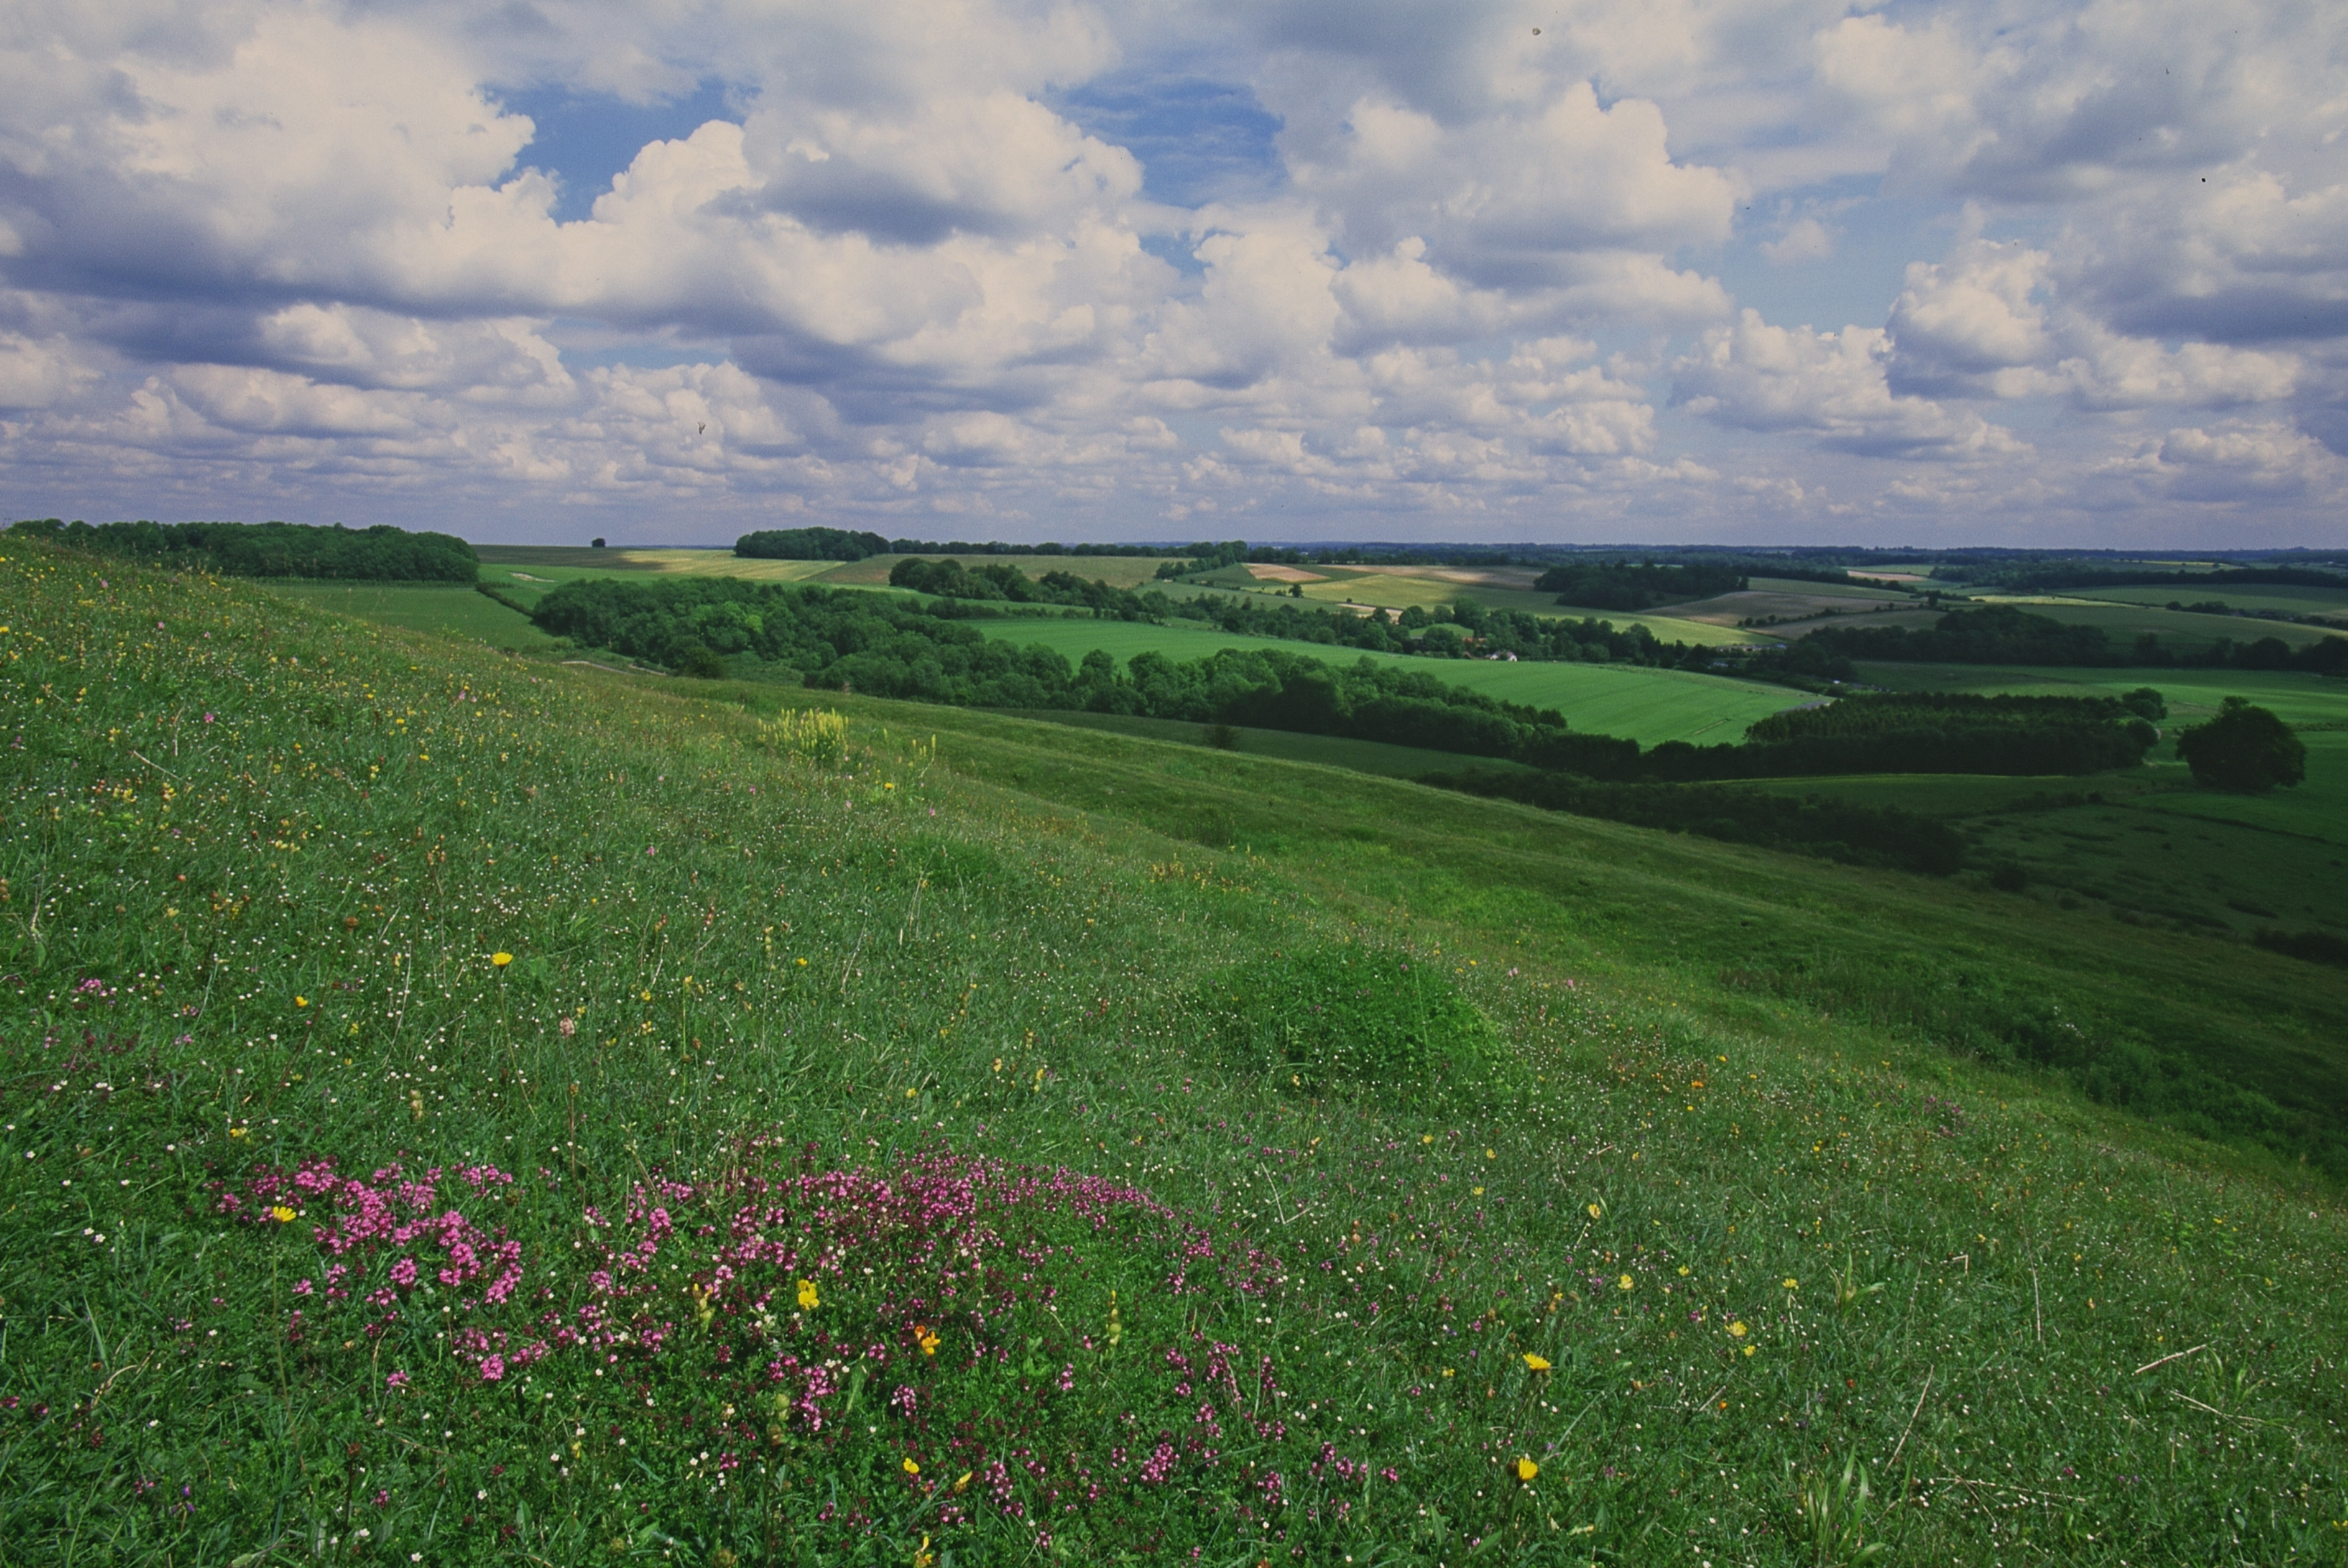 Rolling, green hills with wildflowers extend into the distance.